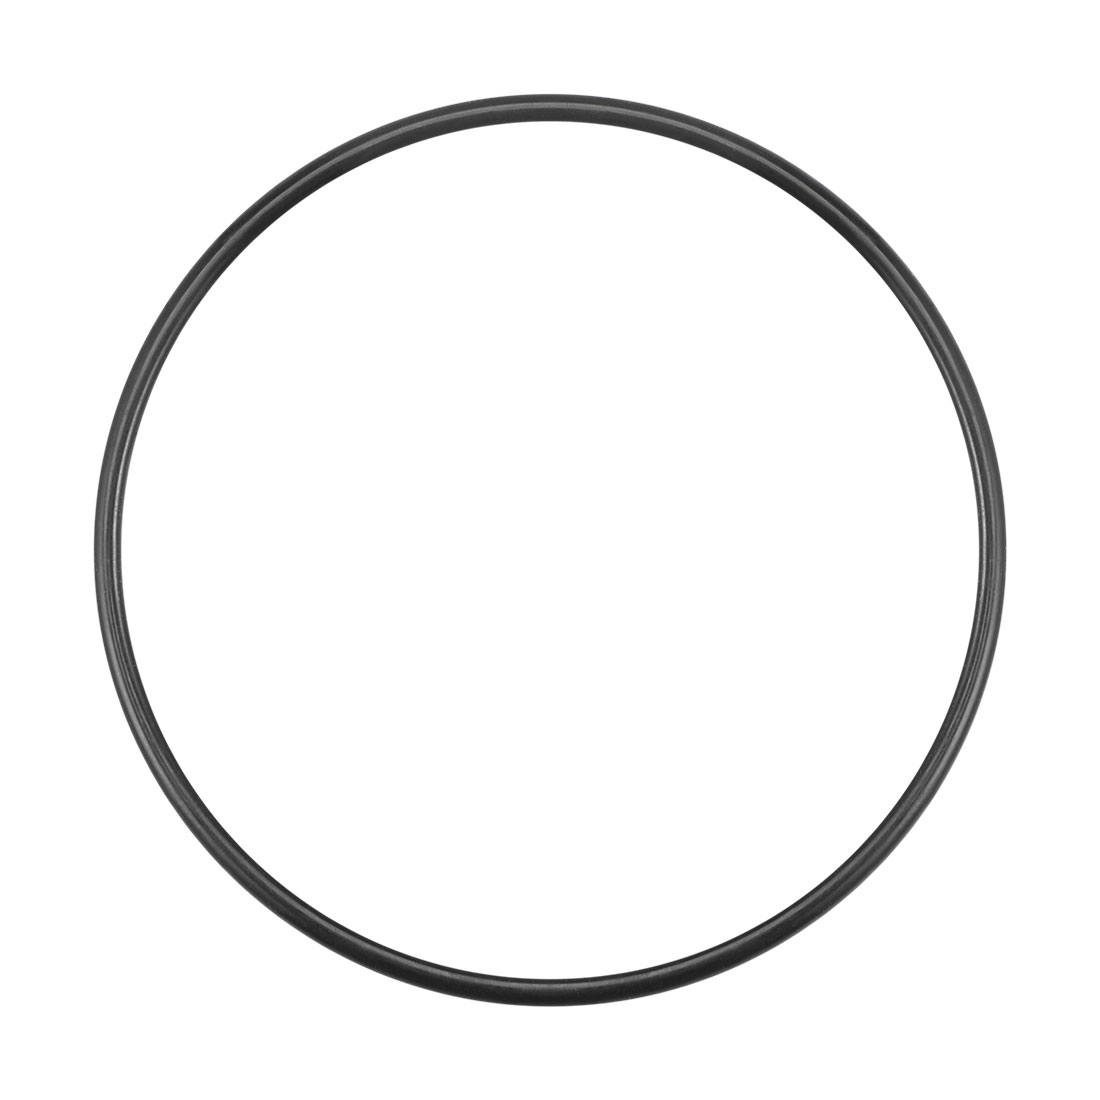 O-Rings Nitrile Rubber 47.5mm x 51.1mm x 1.8mm Round Seal Gasket